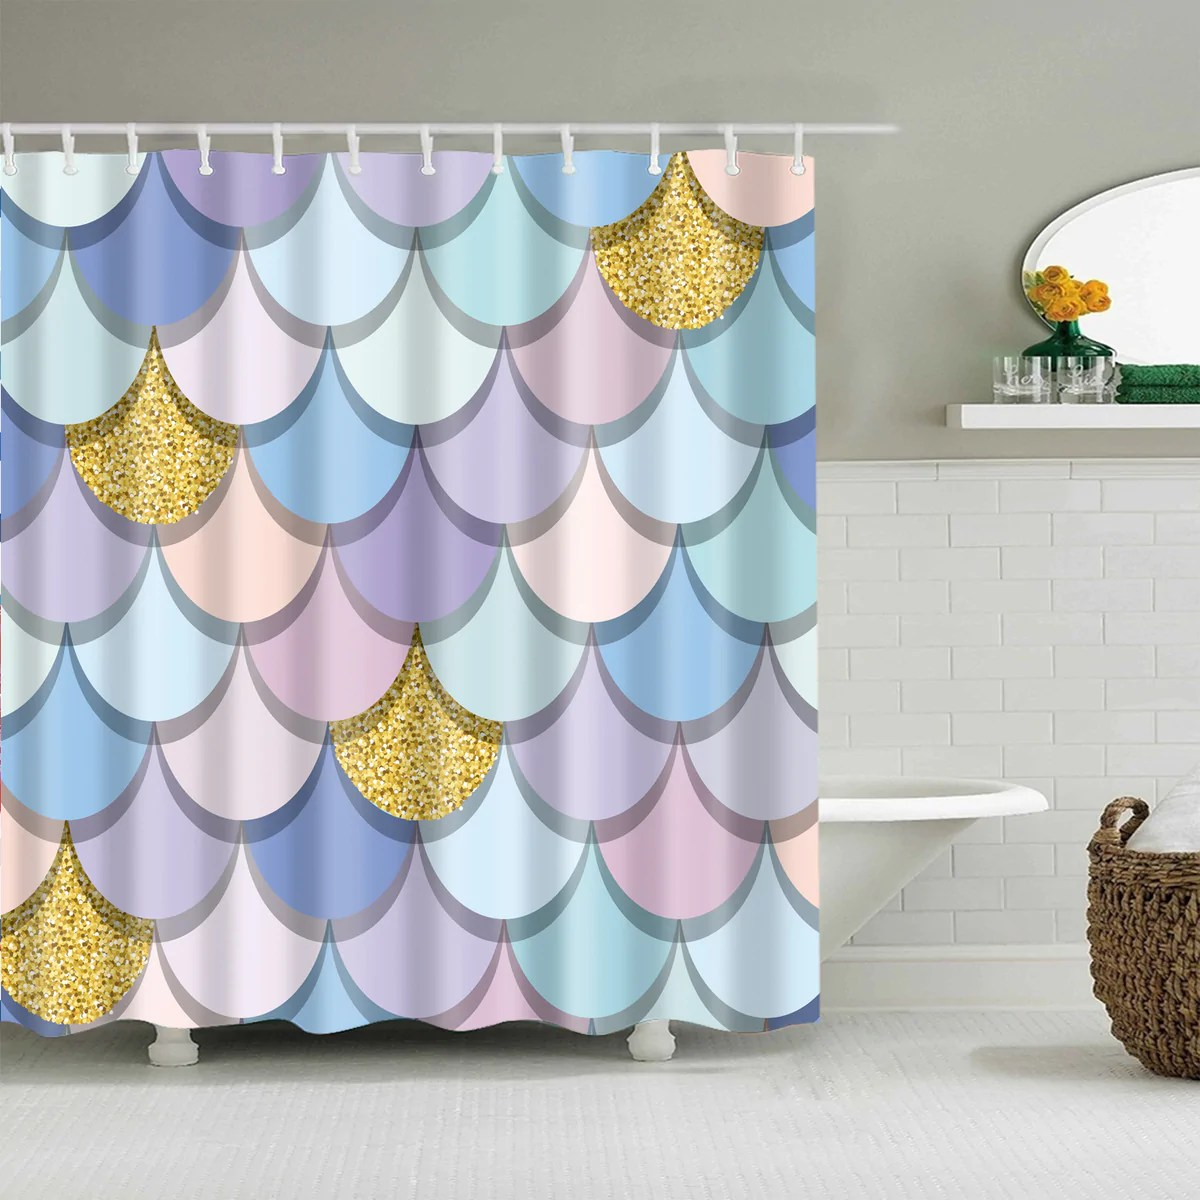 Mermaid Scale Shower Curtain Pastel Mermaid Tail Scale Geometric Shower Curtain Bathroom Decor